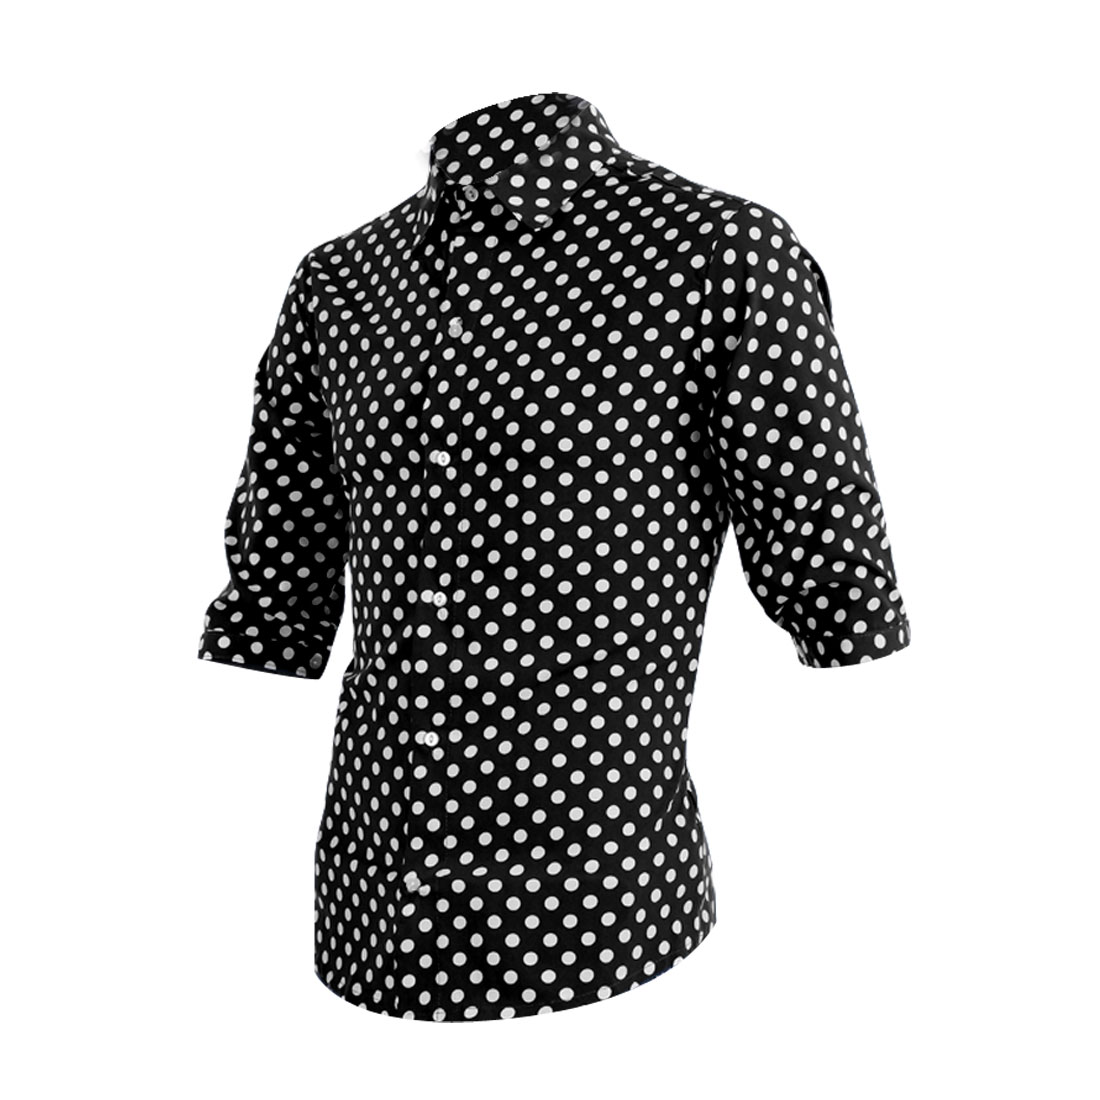 Men Single Breasted Buttons Front Chiffon Dots Tops Black White M